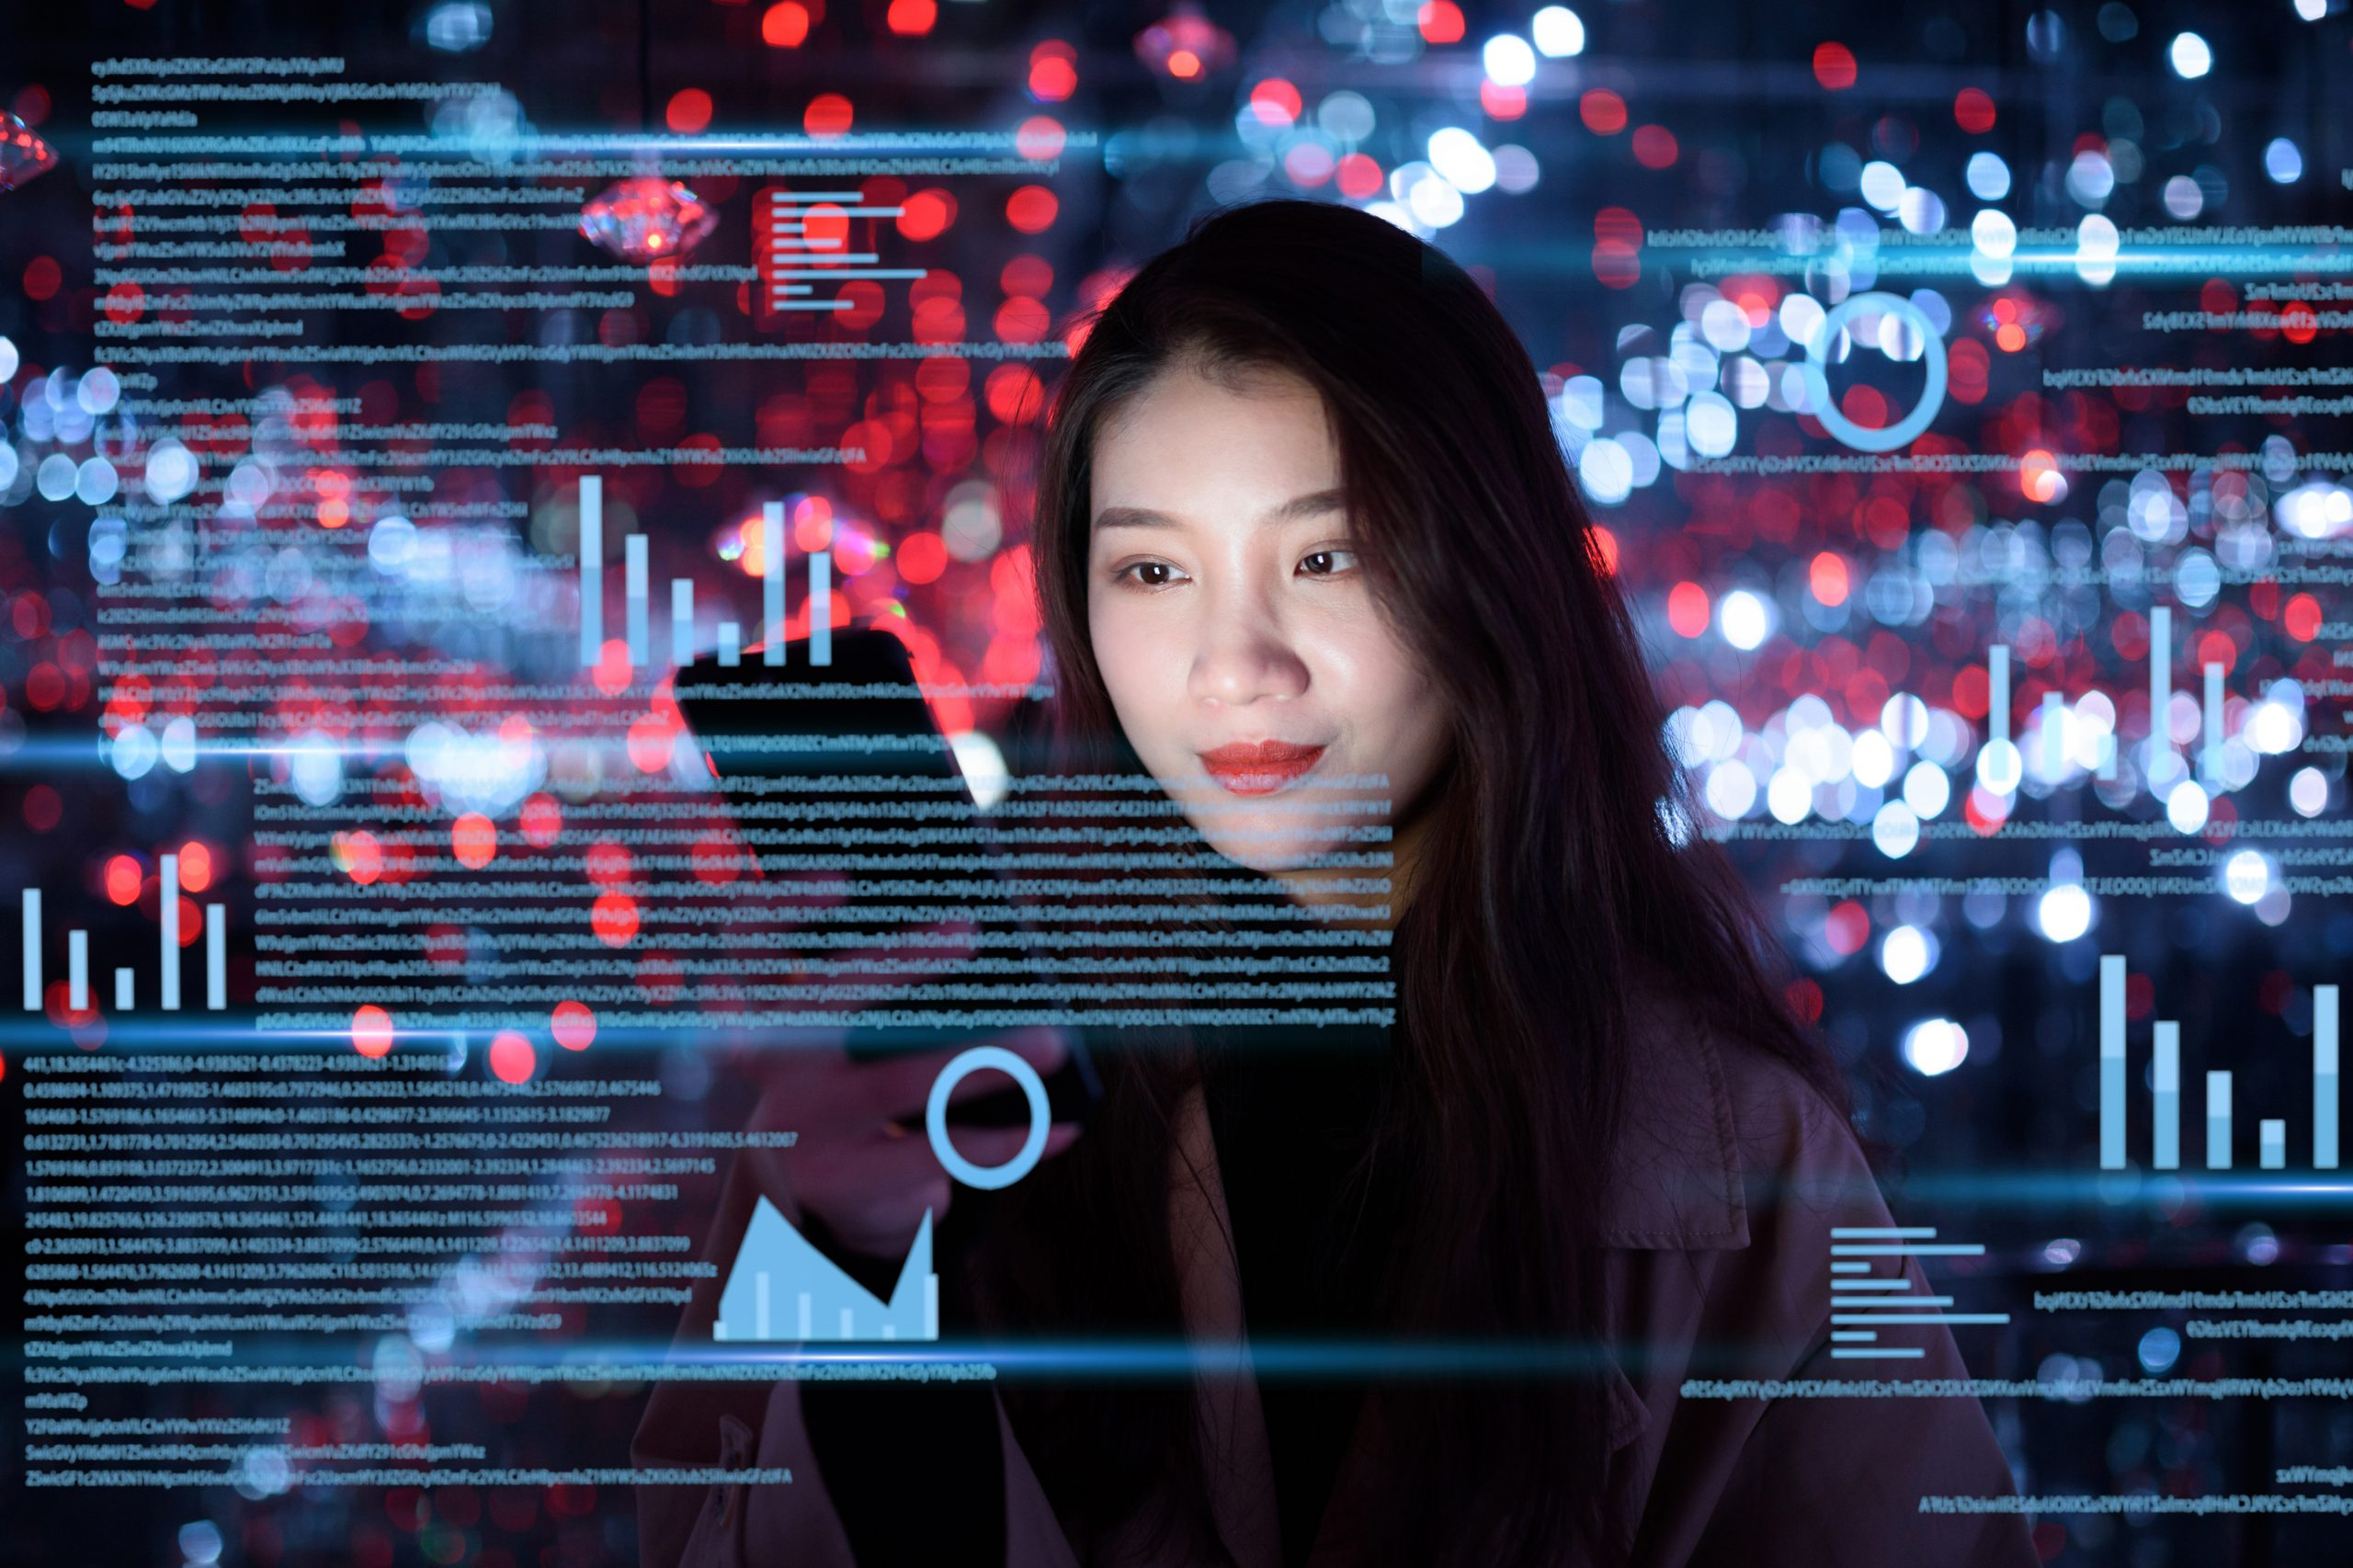 young woman uses mobile phone on virtual visual screen at night